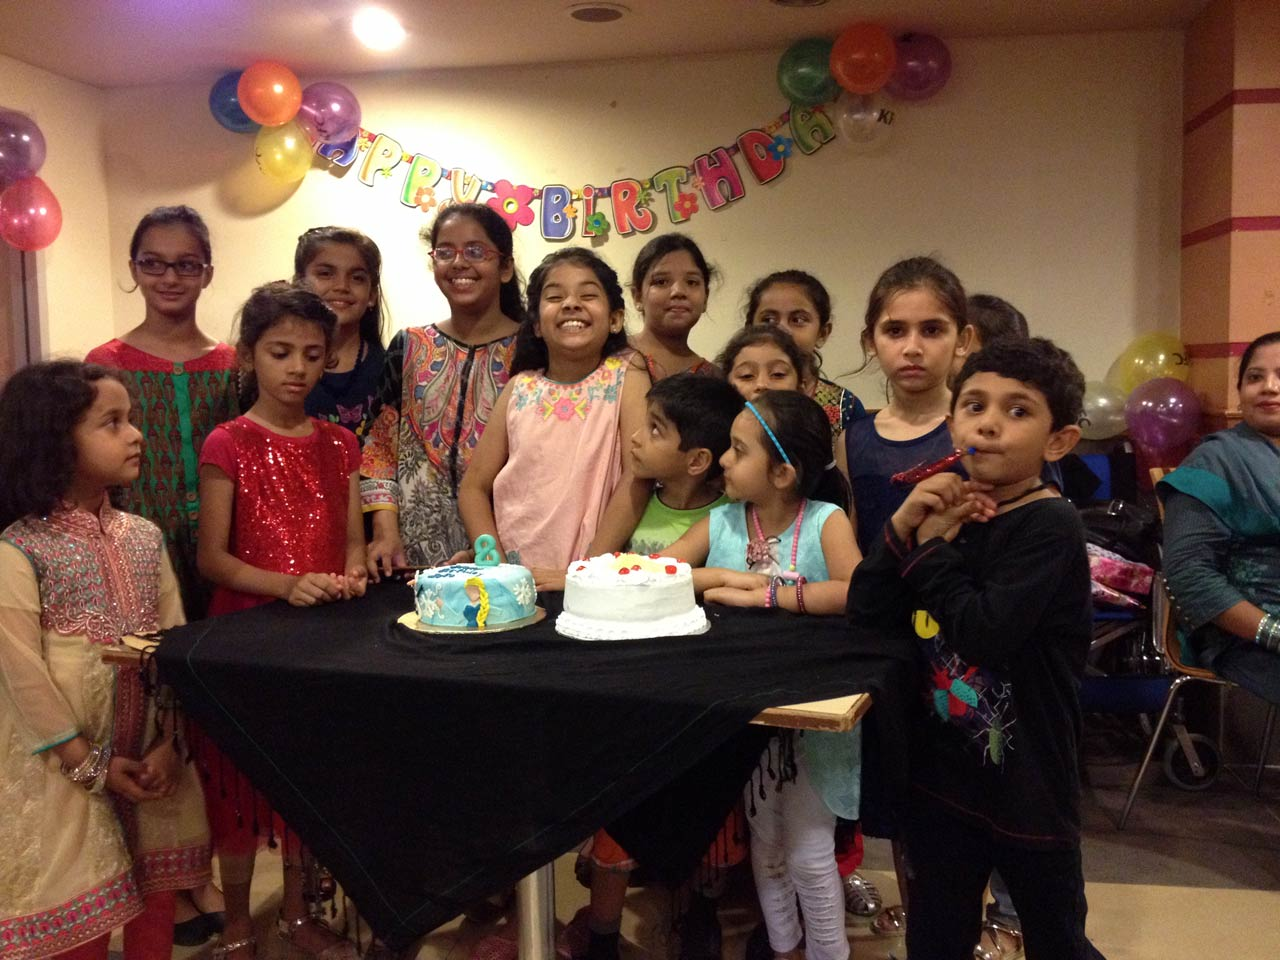 Zara and her friends are having fun with the Happy Birthday Cake